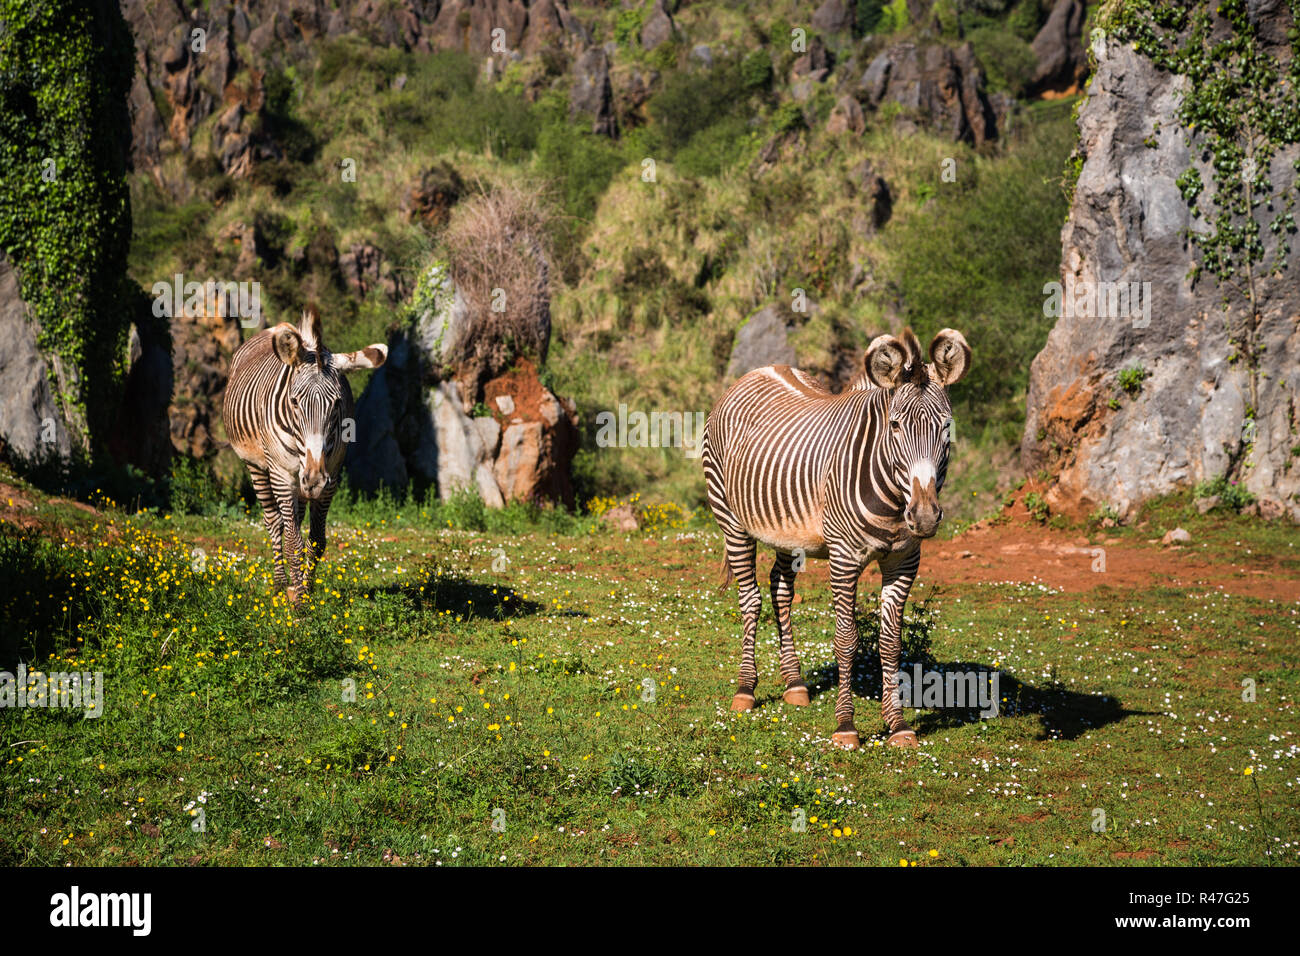 the grevy's zebra (equus grevyi),sometimes known as the imperial zebra,is the largest species of zebra. it is found in the masai mara reserve in kenya africa Stock Photo